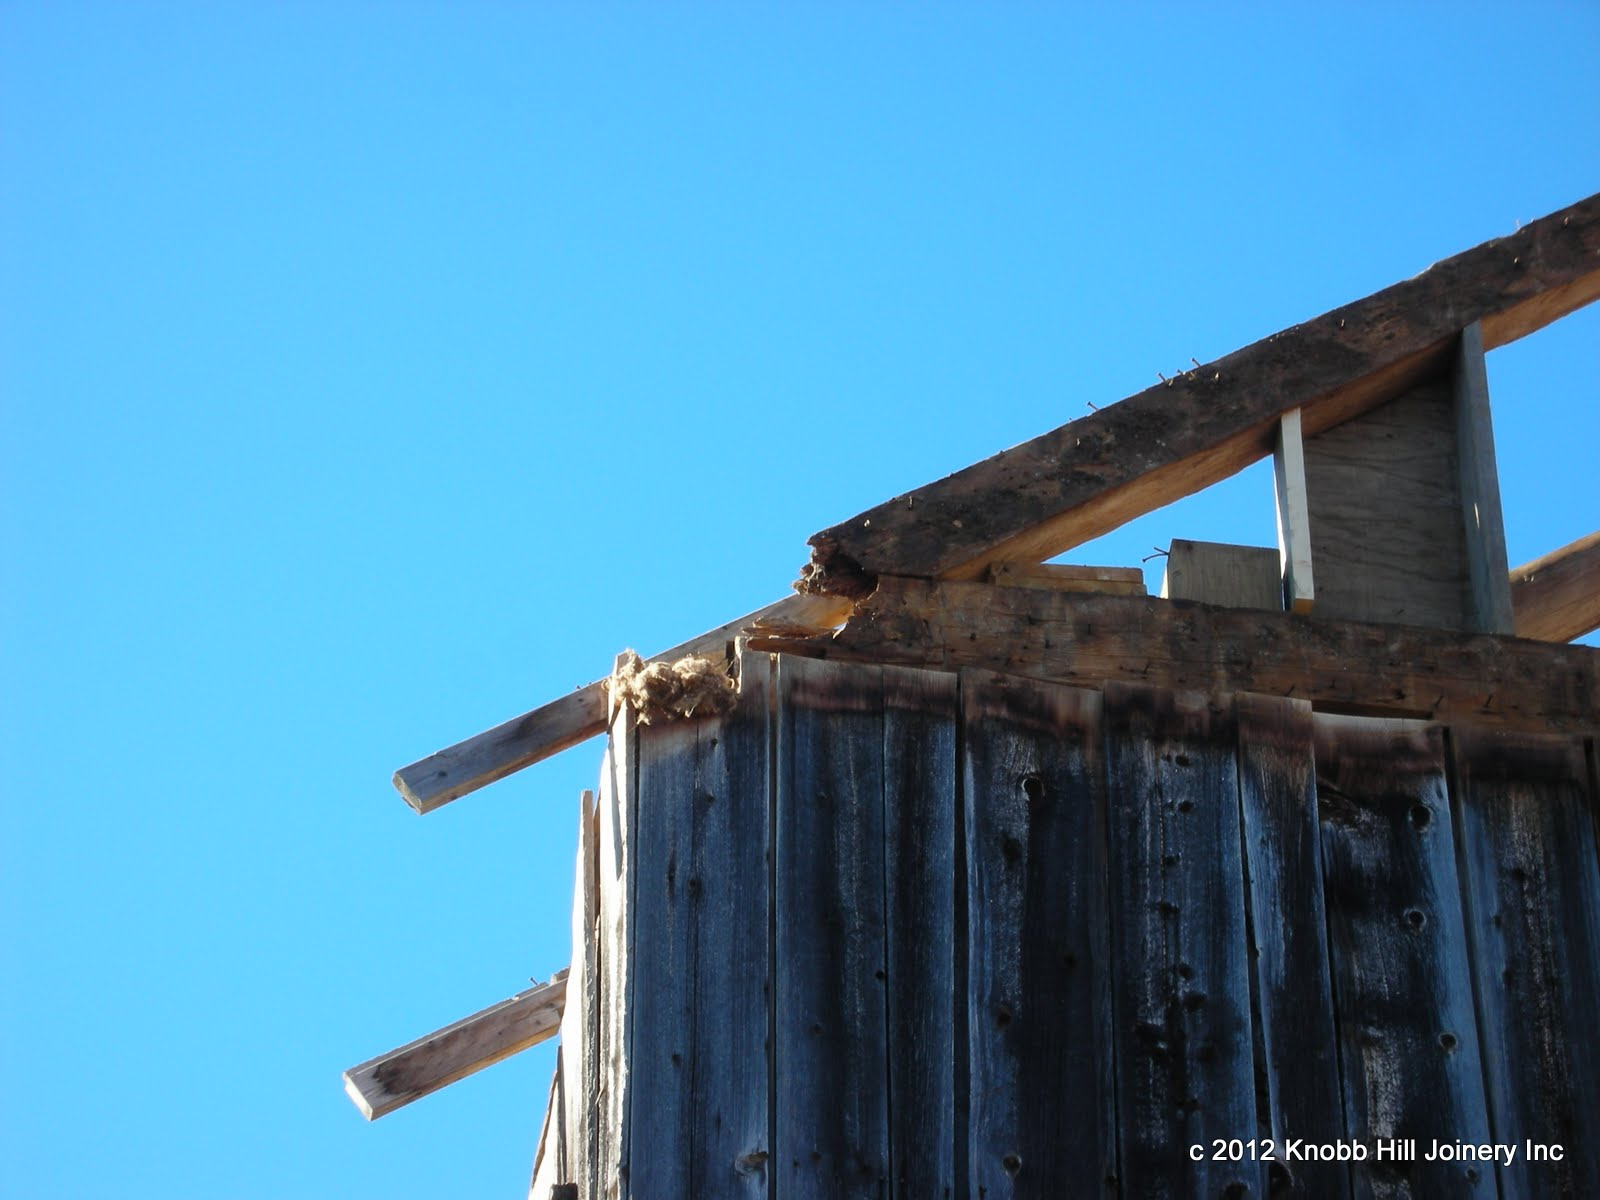 The sheathing of the barn may have been doing more to hold the frame together than the timber.